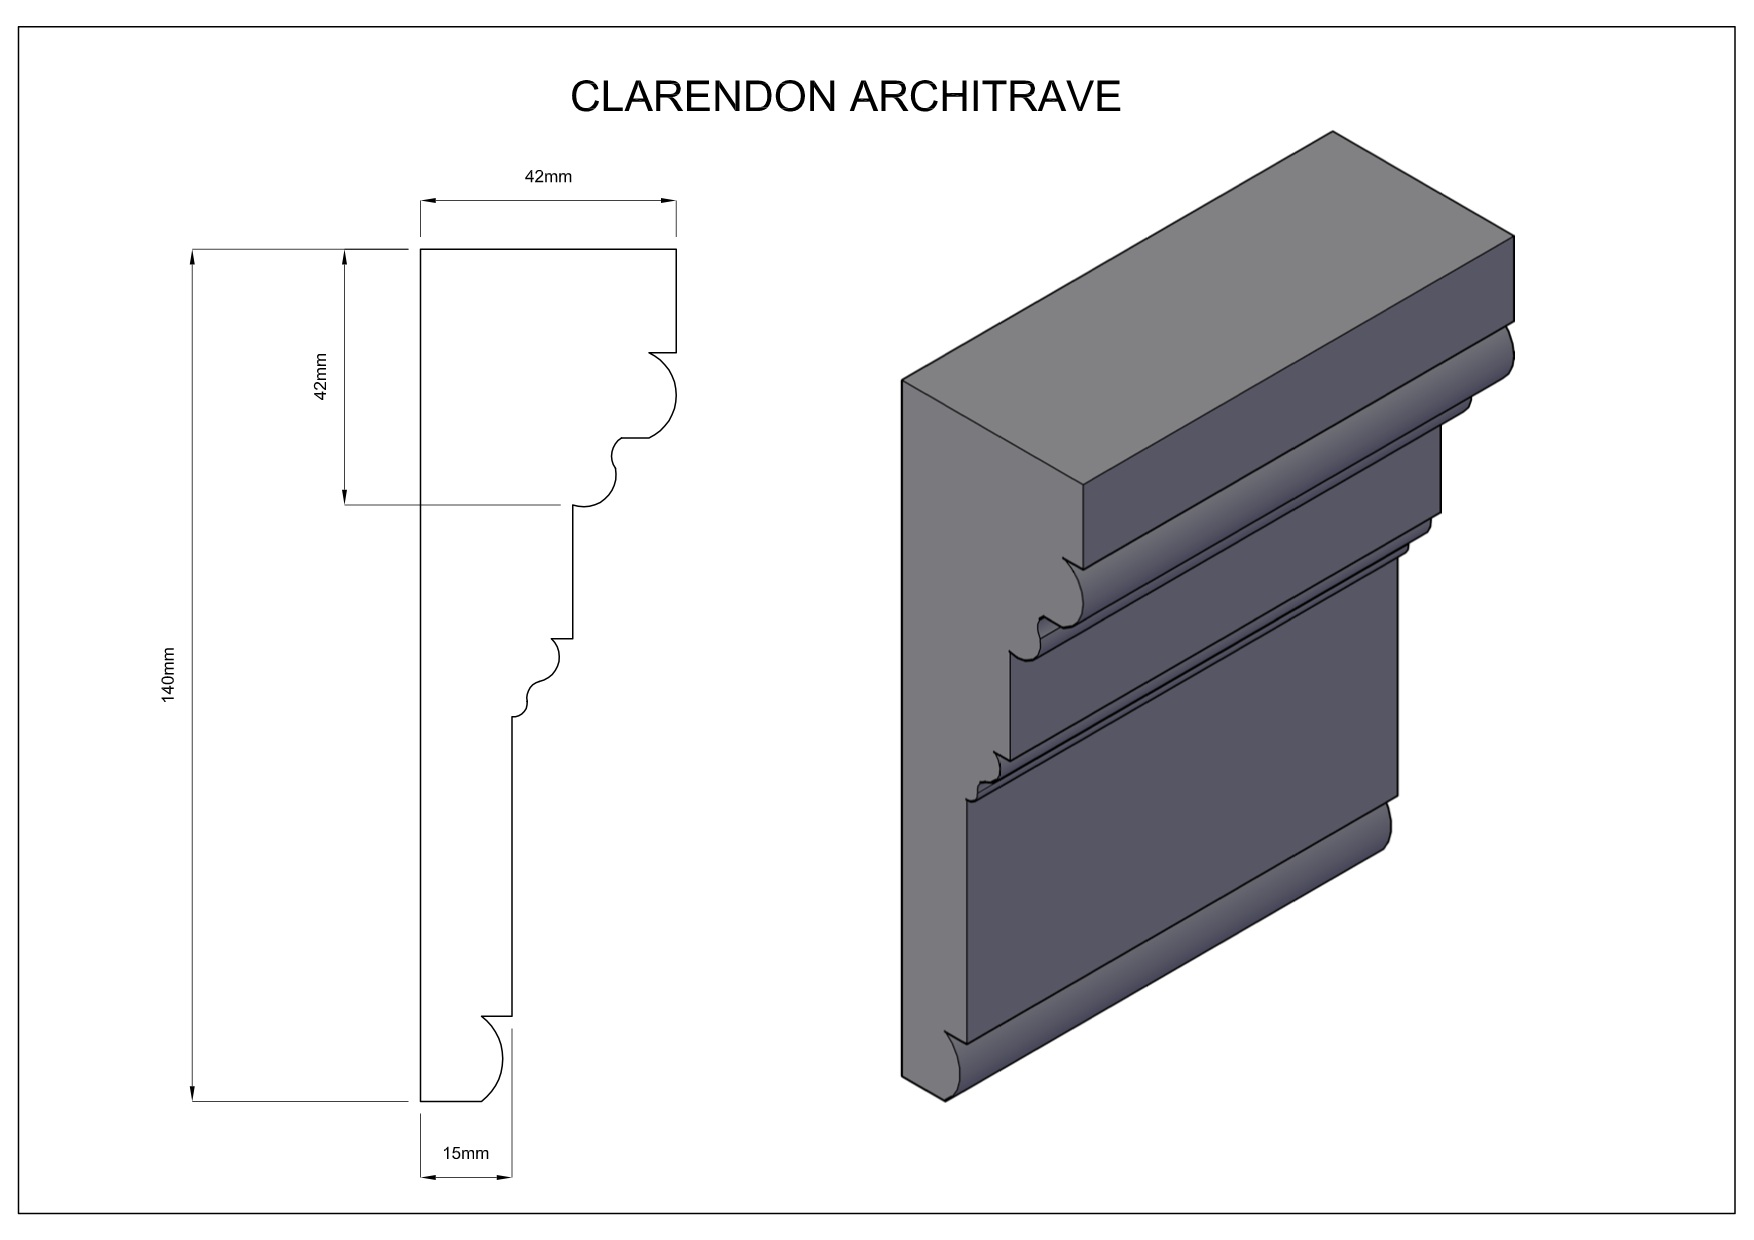 Clarendon-Architrave small large